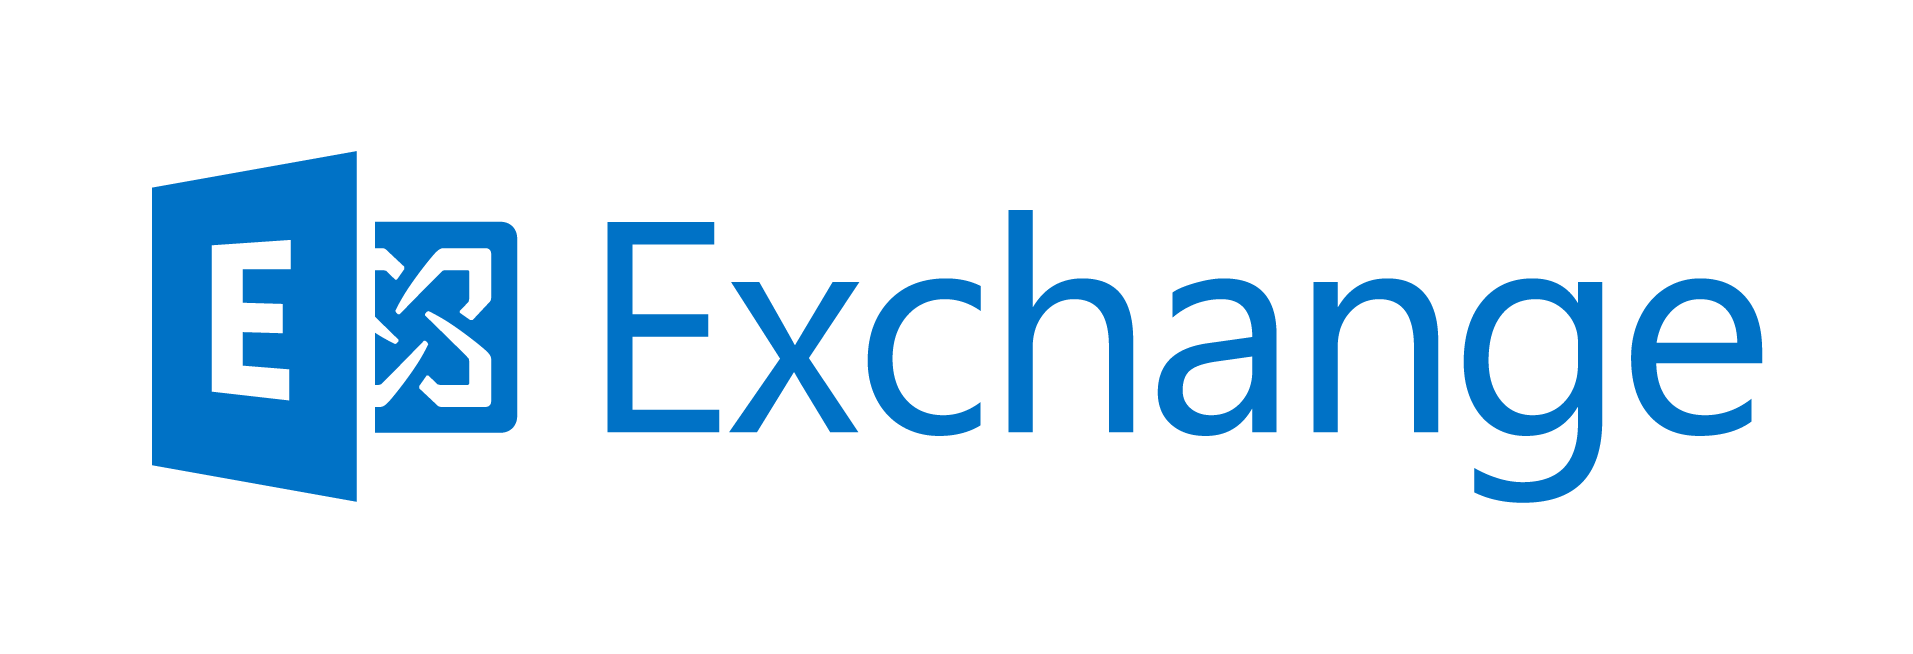 What is Microsoft Exchange? - Microsoft Exchange PNG